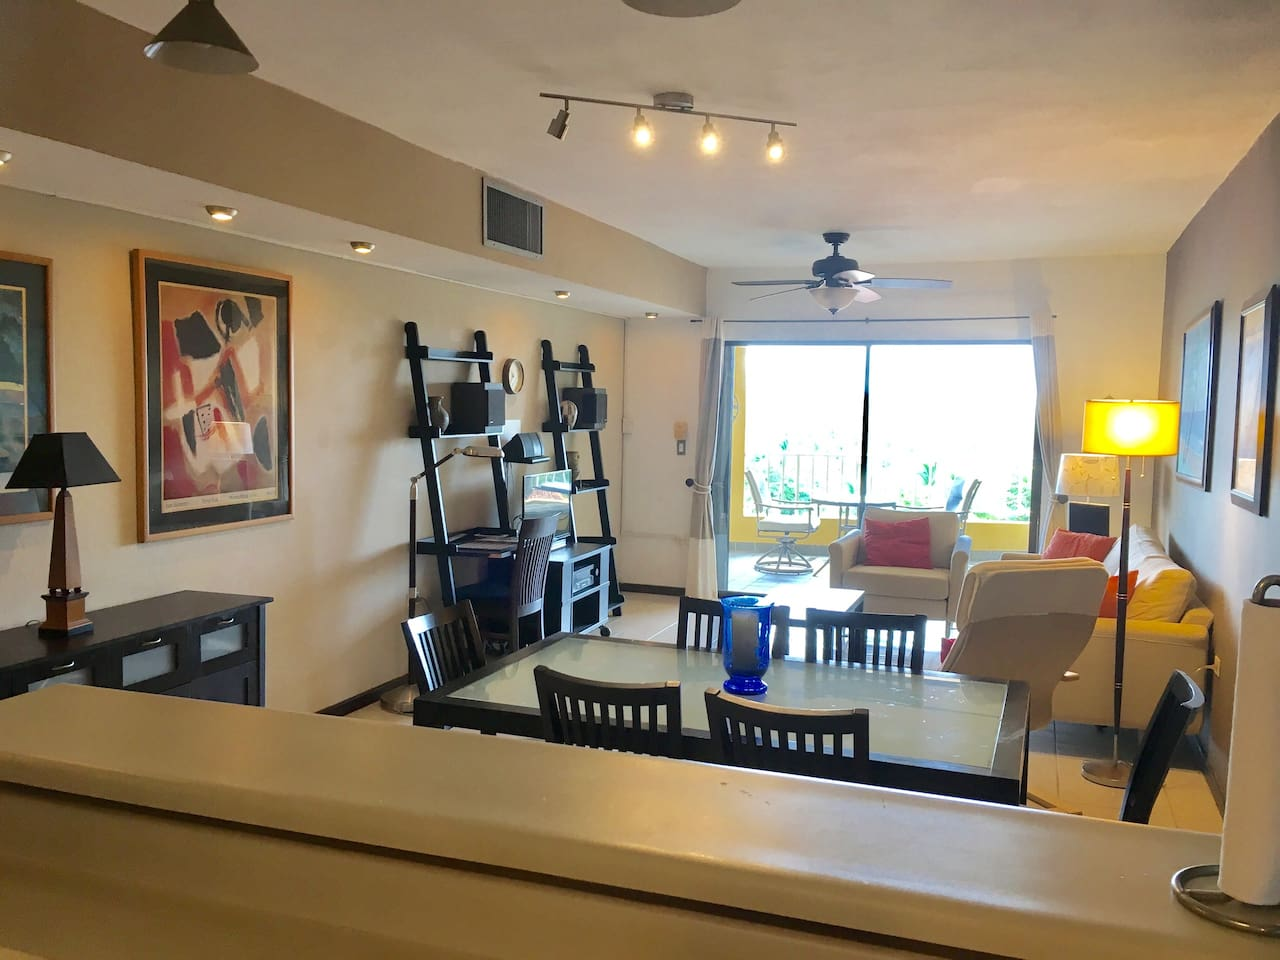 Dining and living room has a sliding door with access to the balcony.